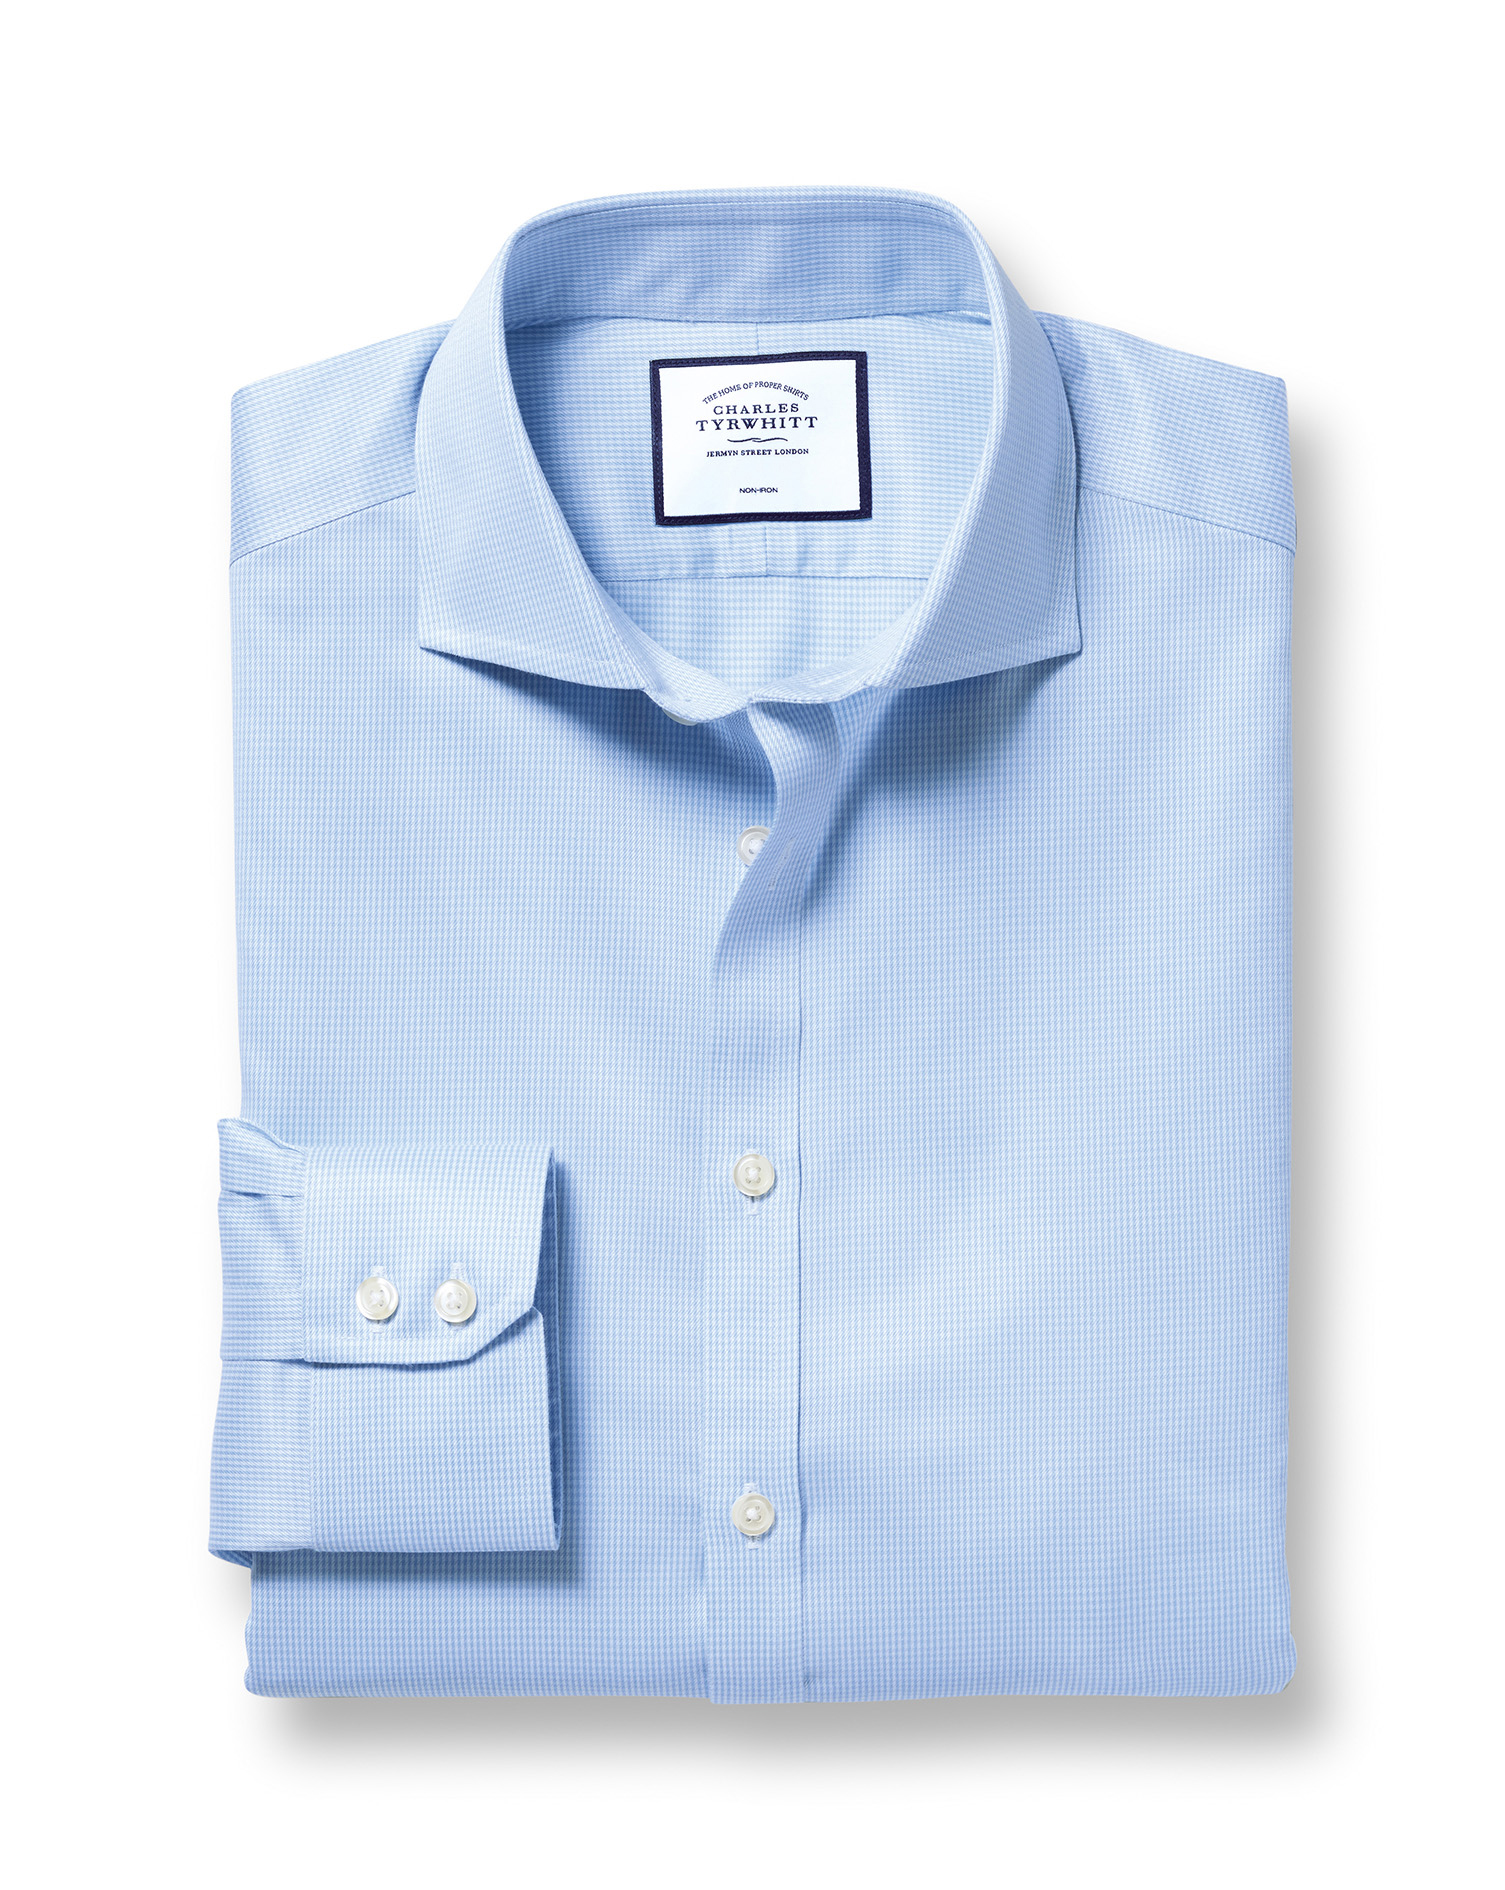 Slim Fit Cutaway Non-Iron Puppytooth Sky Blue Cotton Formal Shirt Double Cuff Size 15.5/35 by Charle